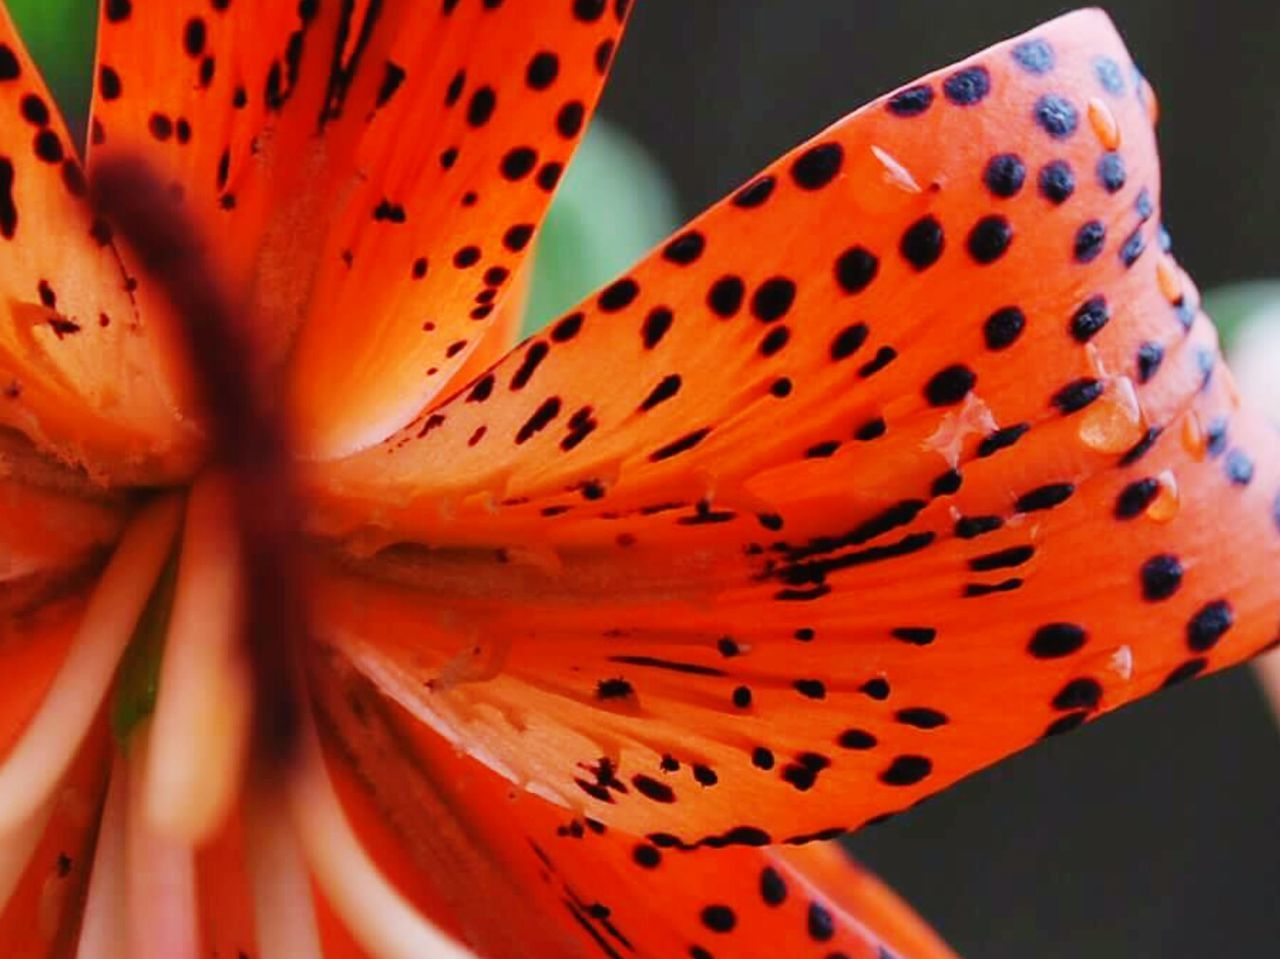 petal, close-up, flower head, no people, red, beauty in nature, freshness, nature, flower, fragility, plant, day, outdoors